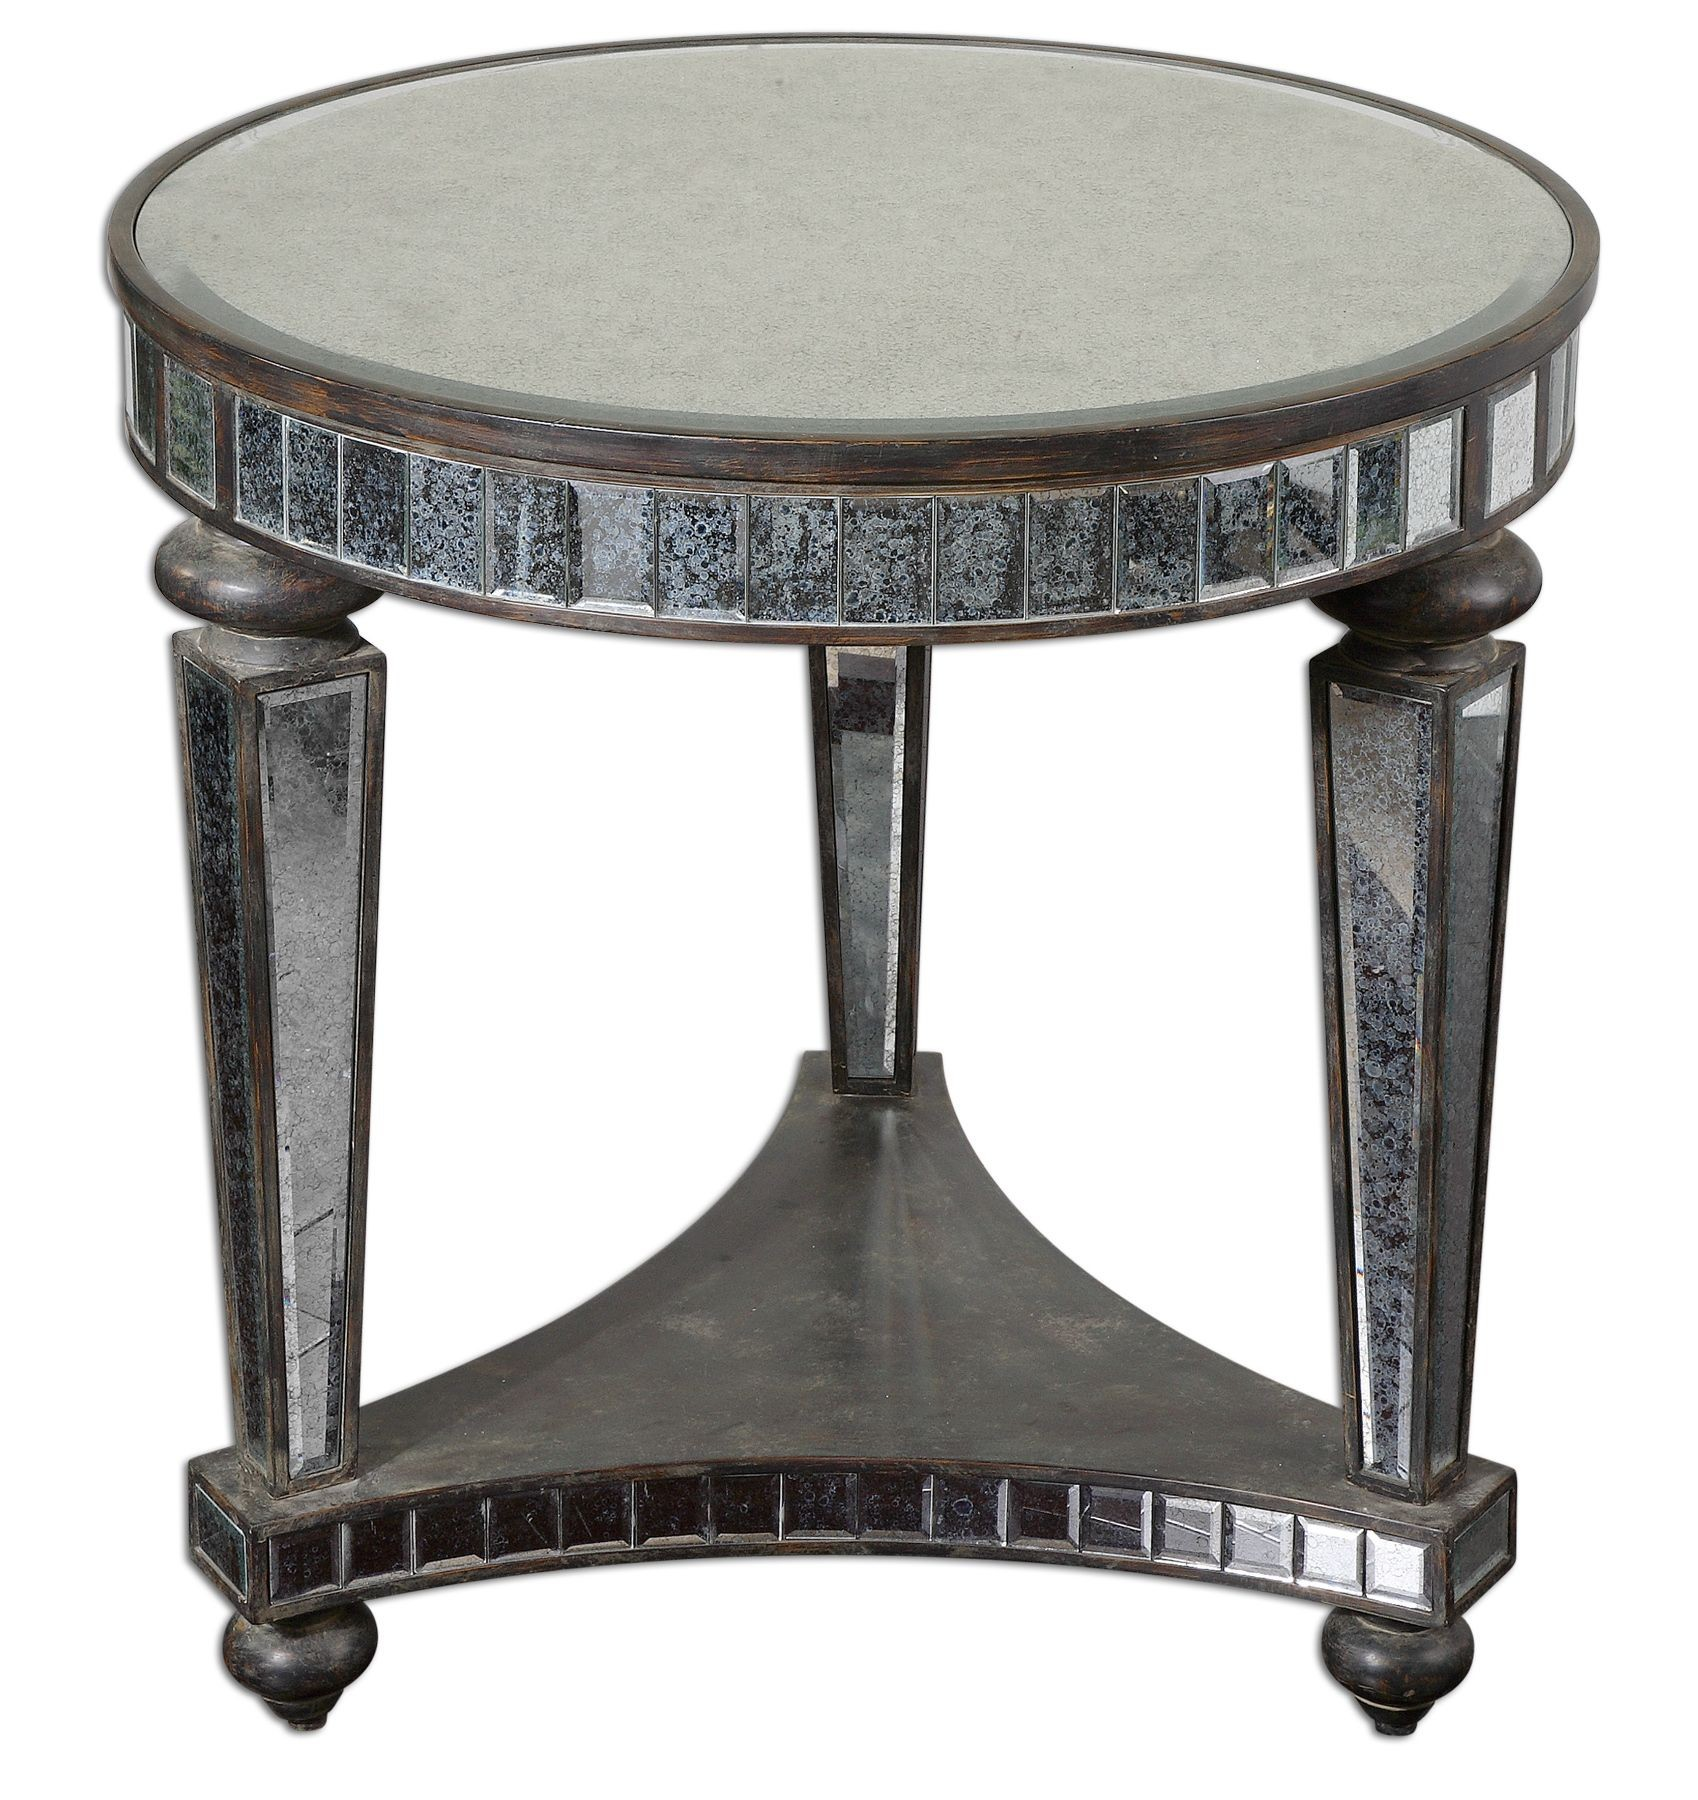 old and vintage round mirrored accent table with shelves square white antique gold marble cube side wall file organizer ikea diy legs ideas nesting console tables thin entryway